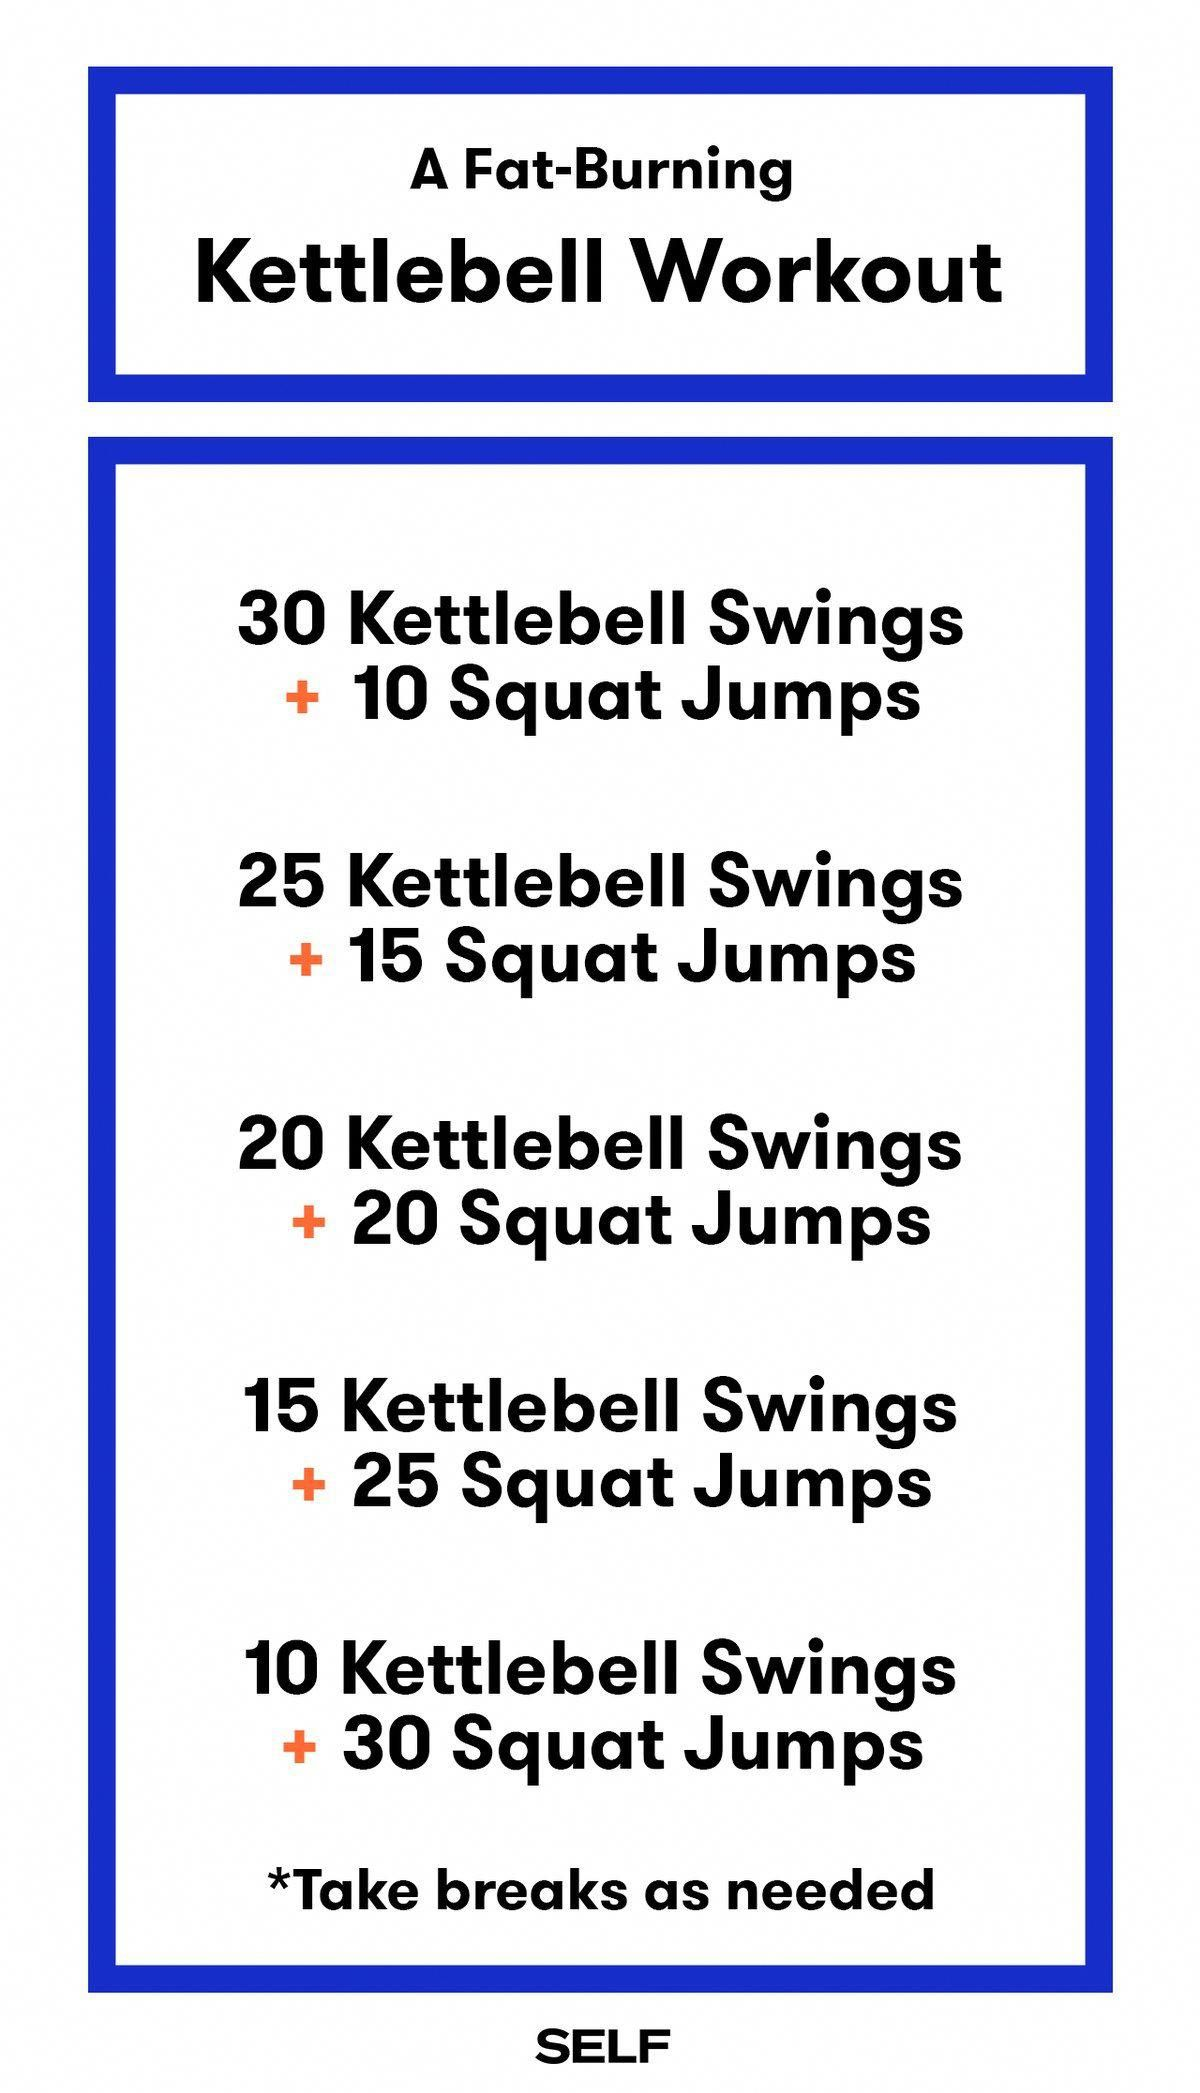 This Kettlebell Workout Burns Fat With Only 2 Moves